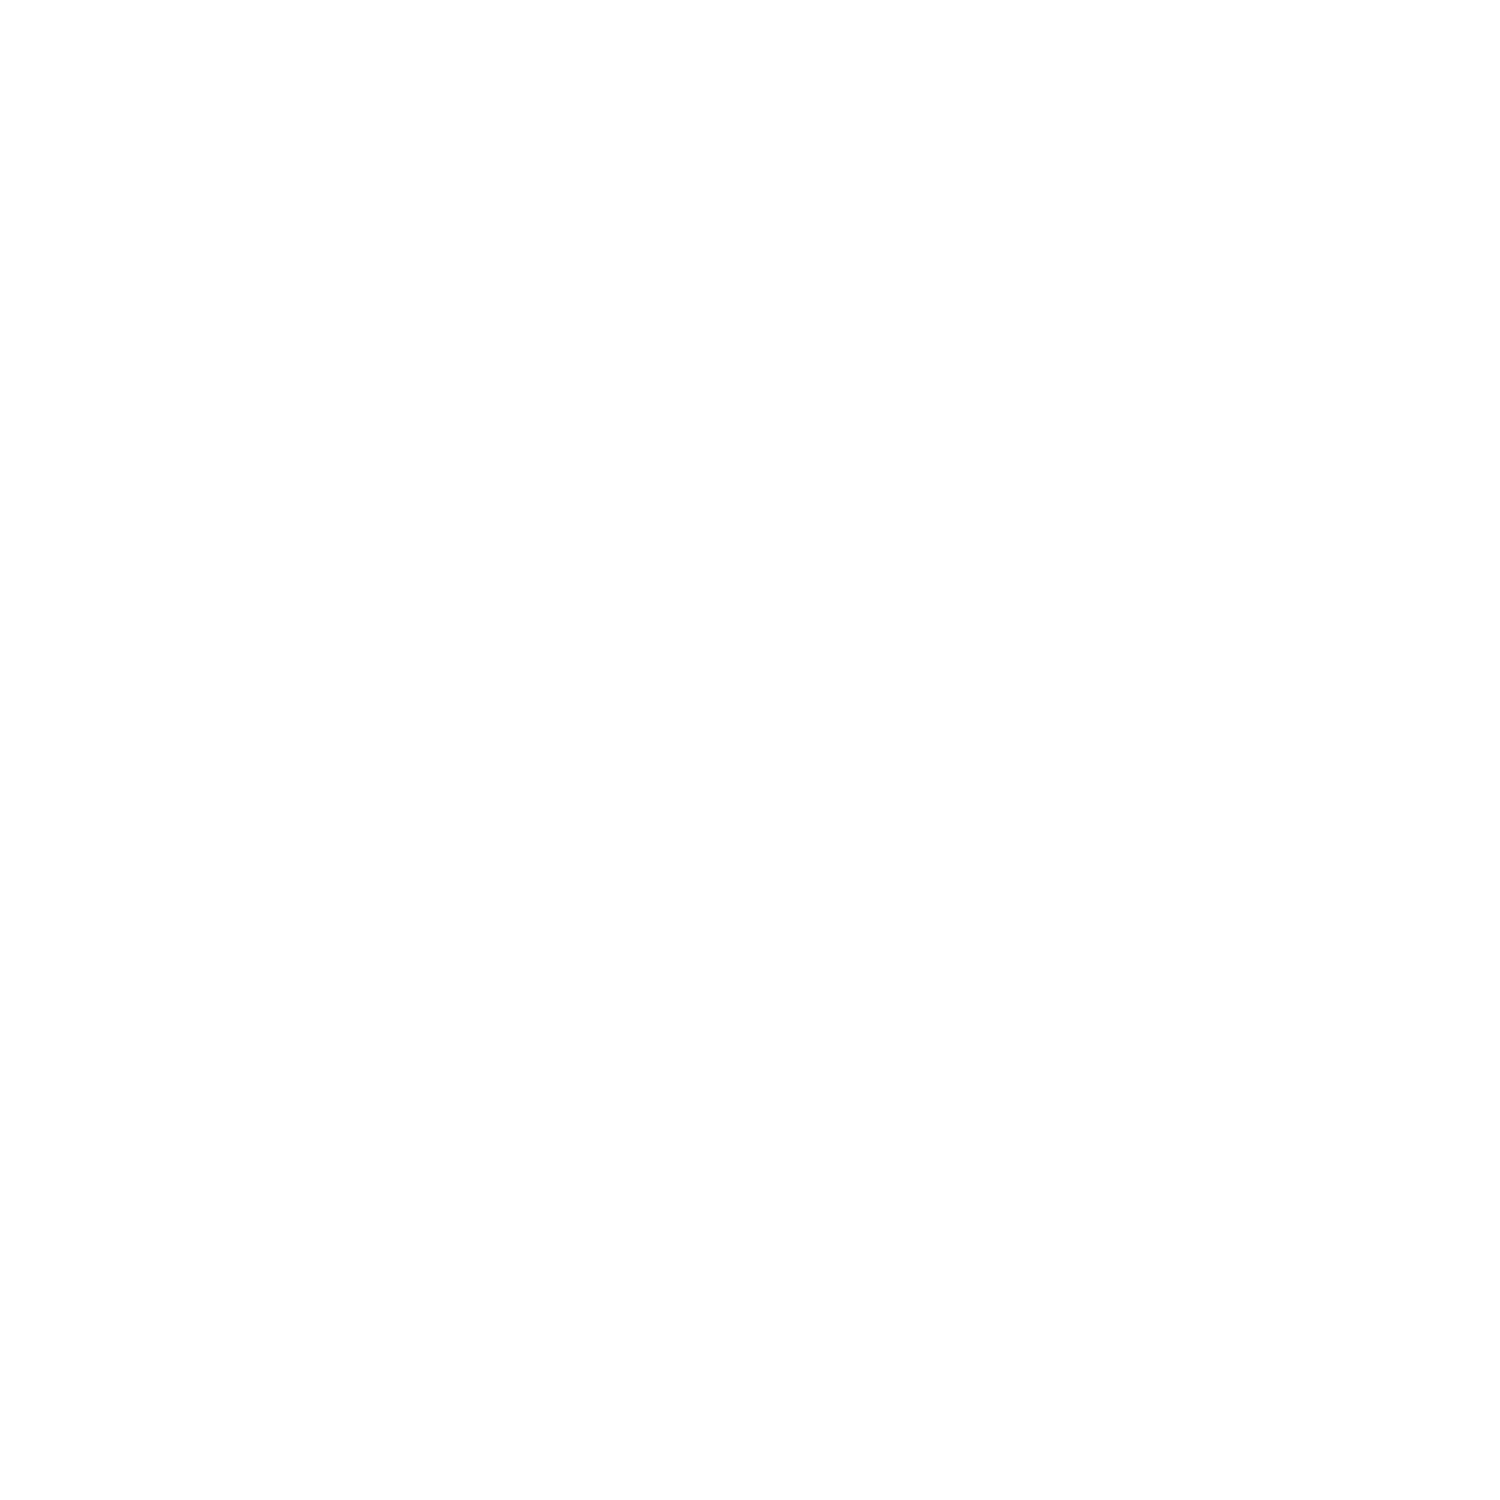 Leisure Cycling logo